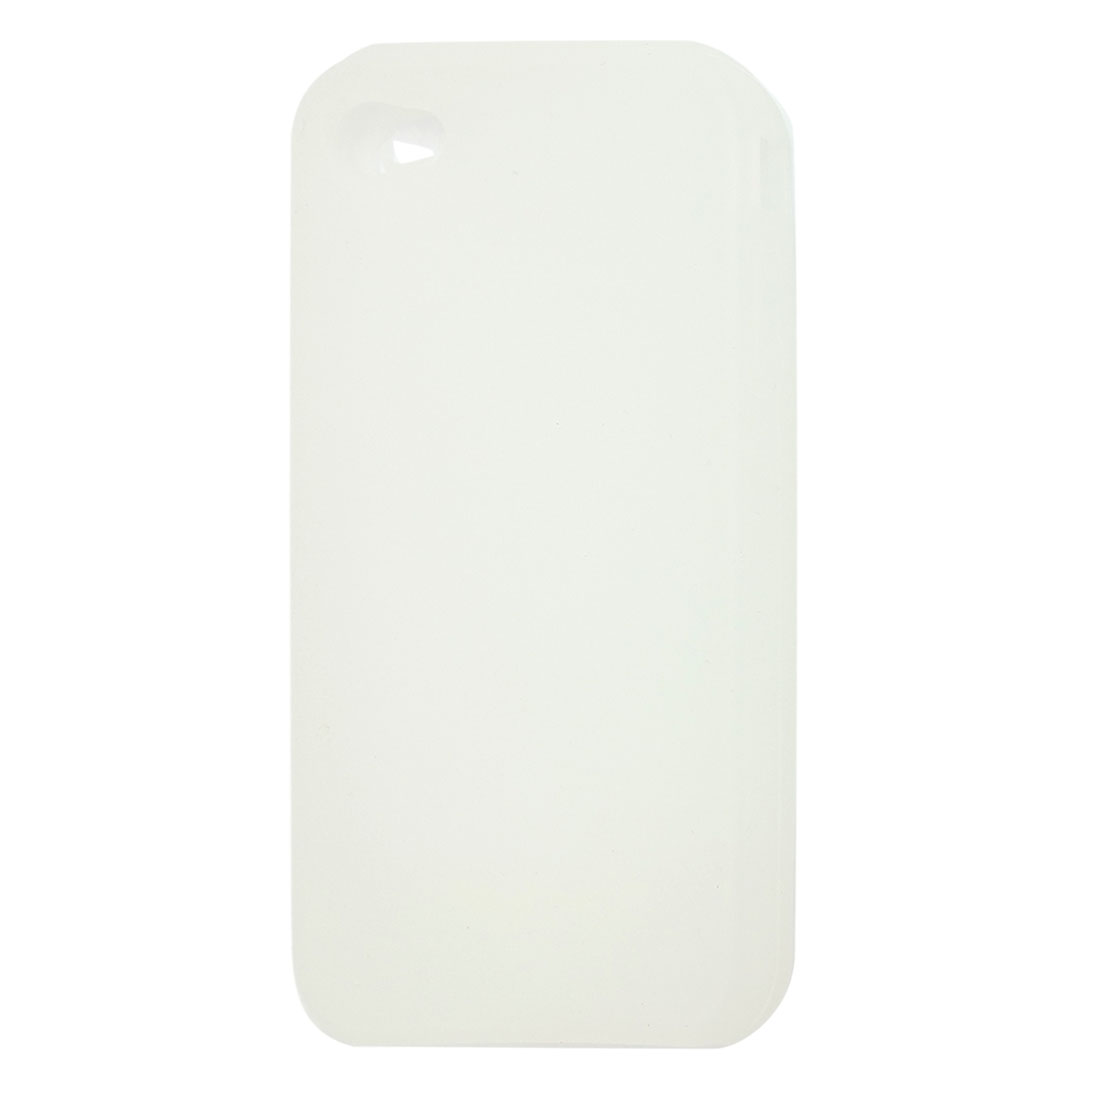 Protectove Soft Silicone Cover Case White for Apple iPhone 4 4G